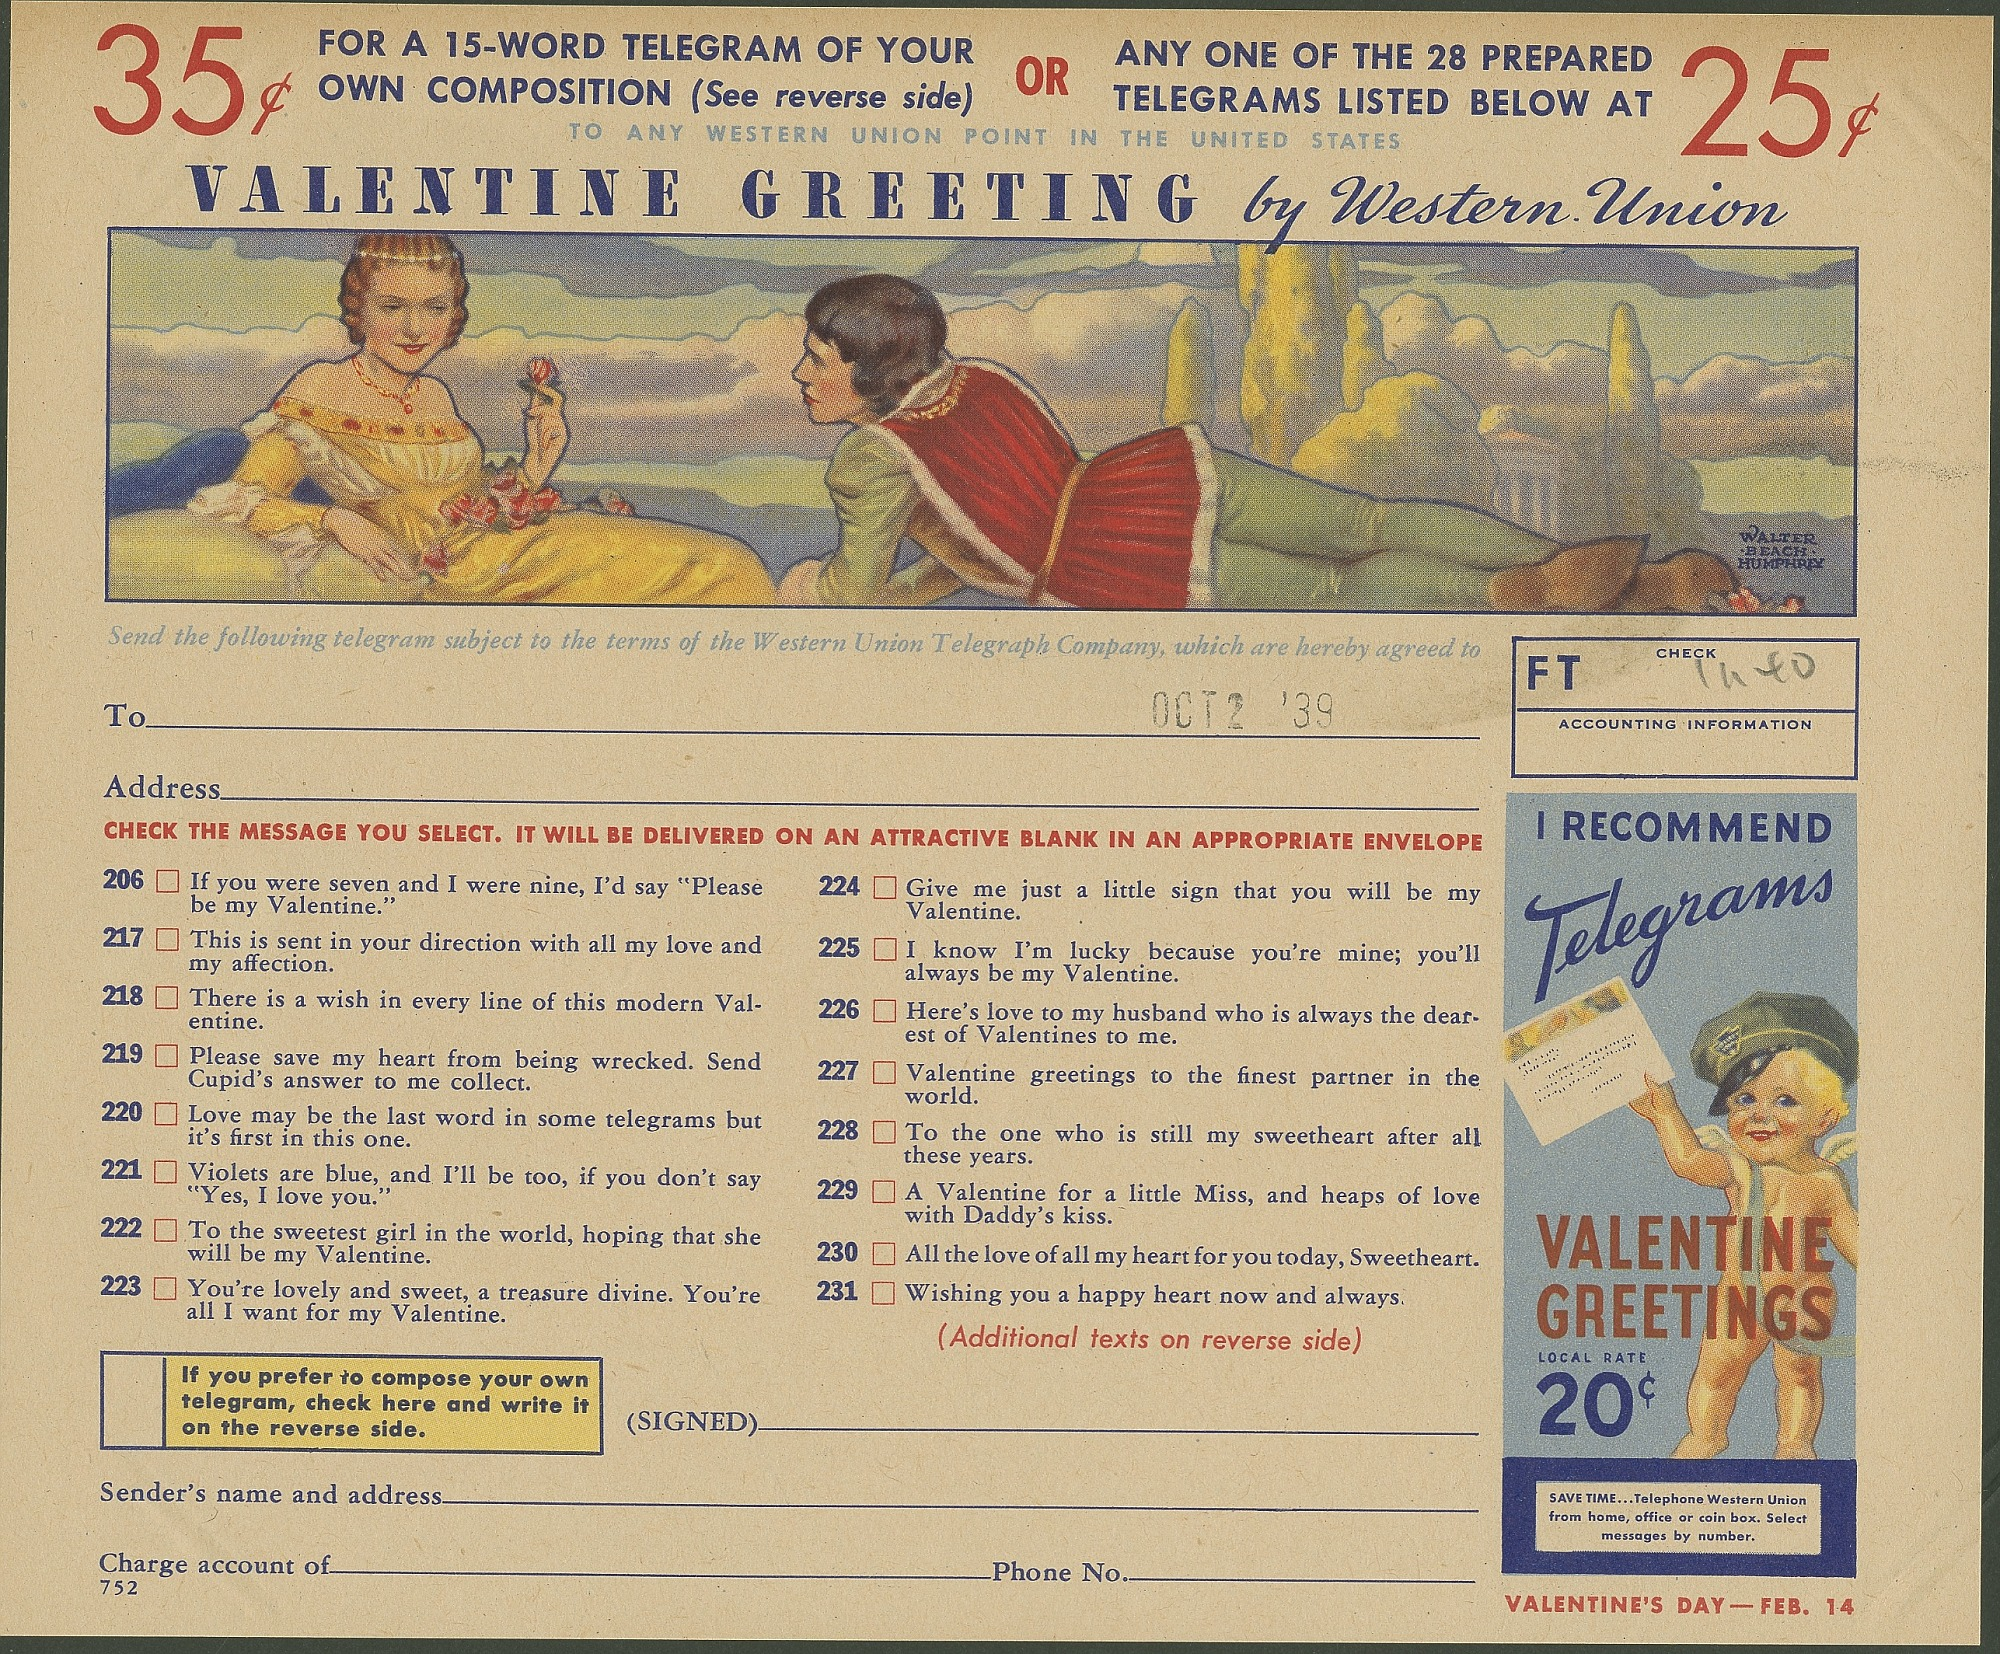 images for Illustrated Valentine greeting by Western Union, blank form,